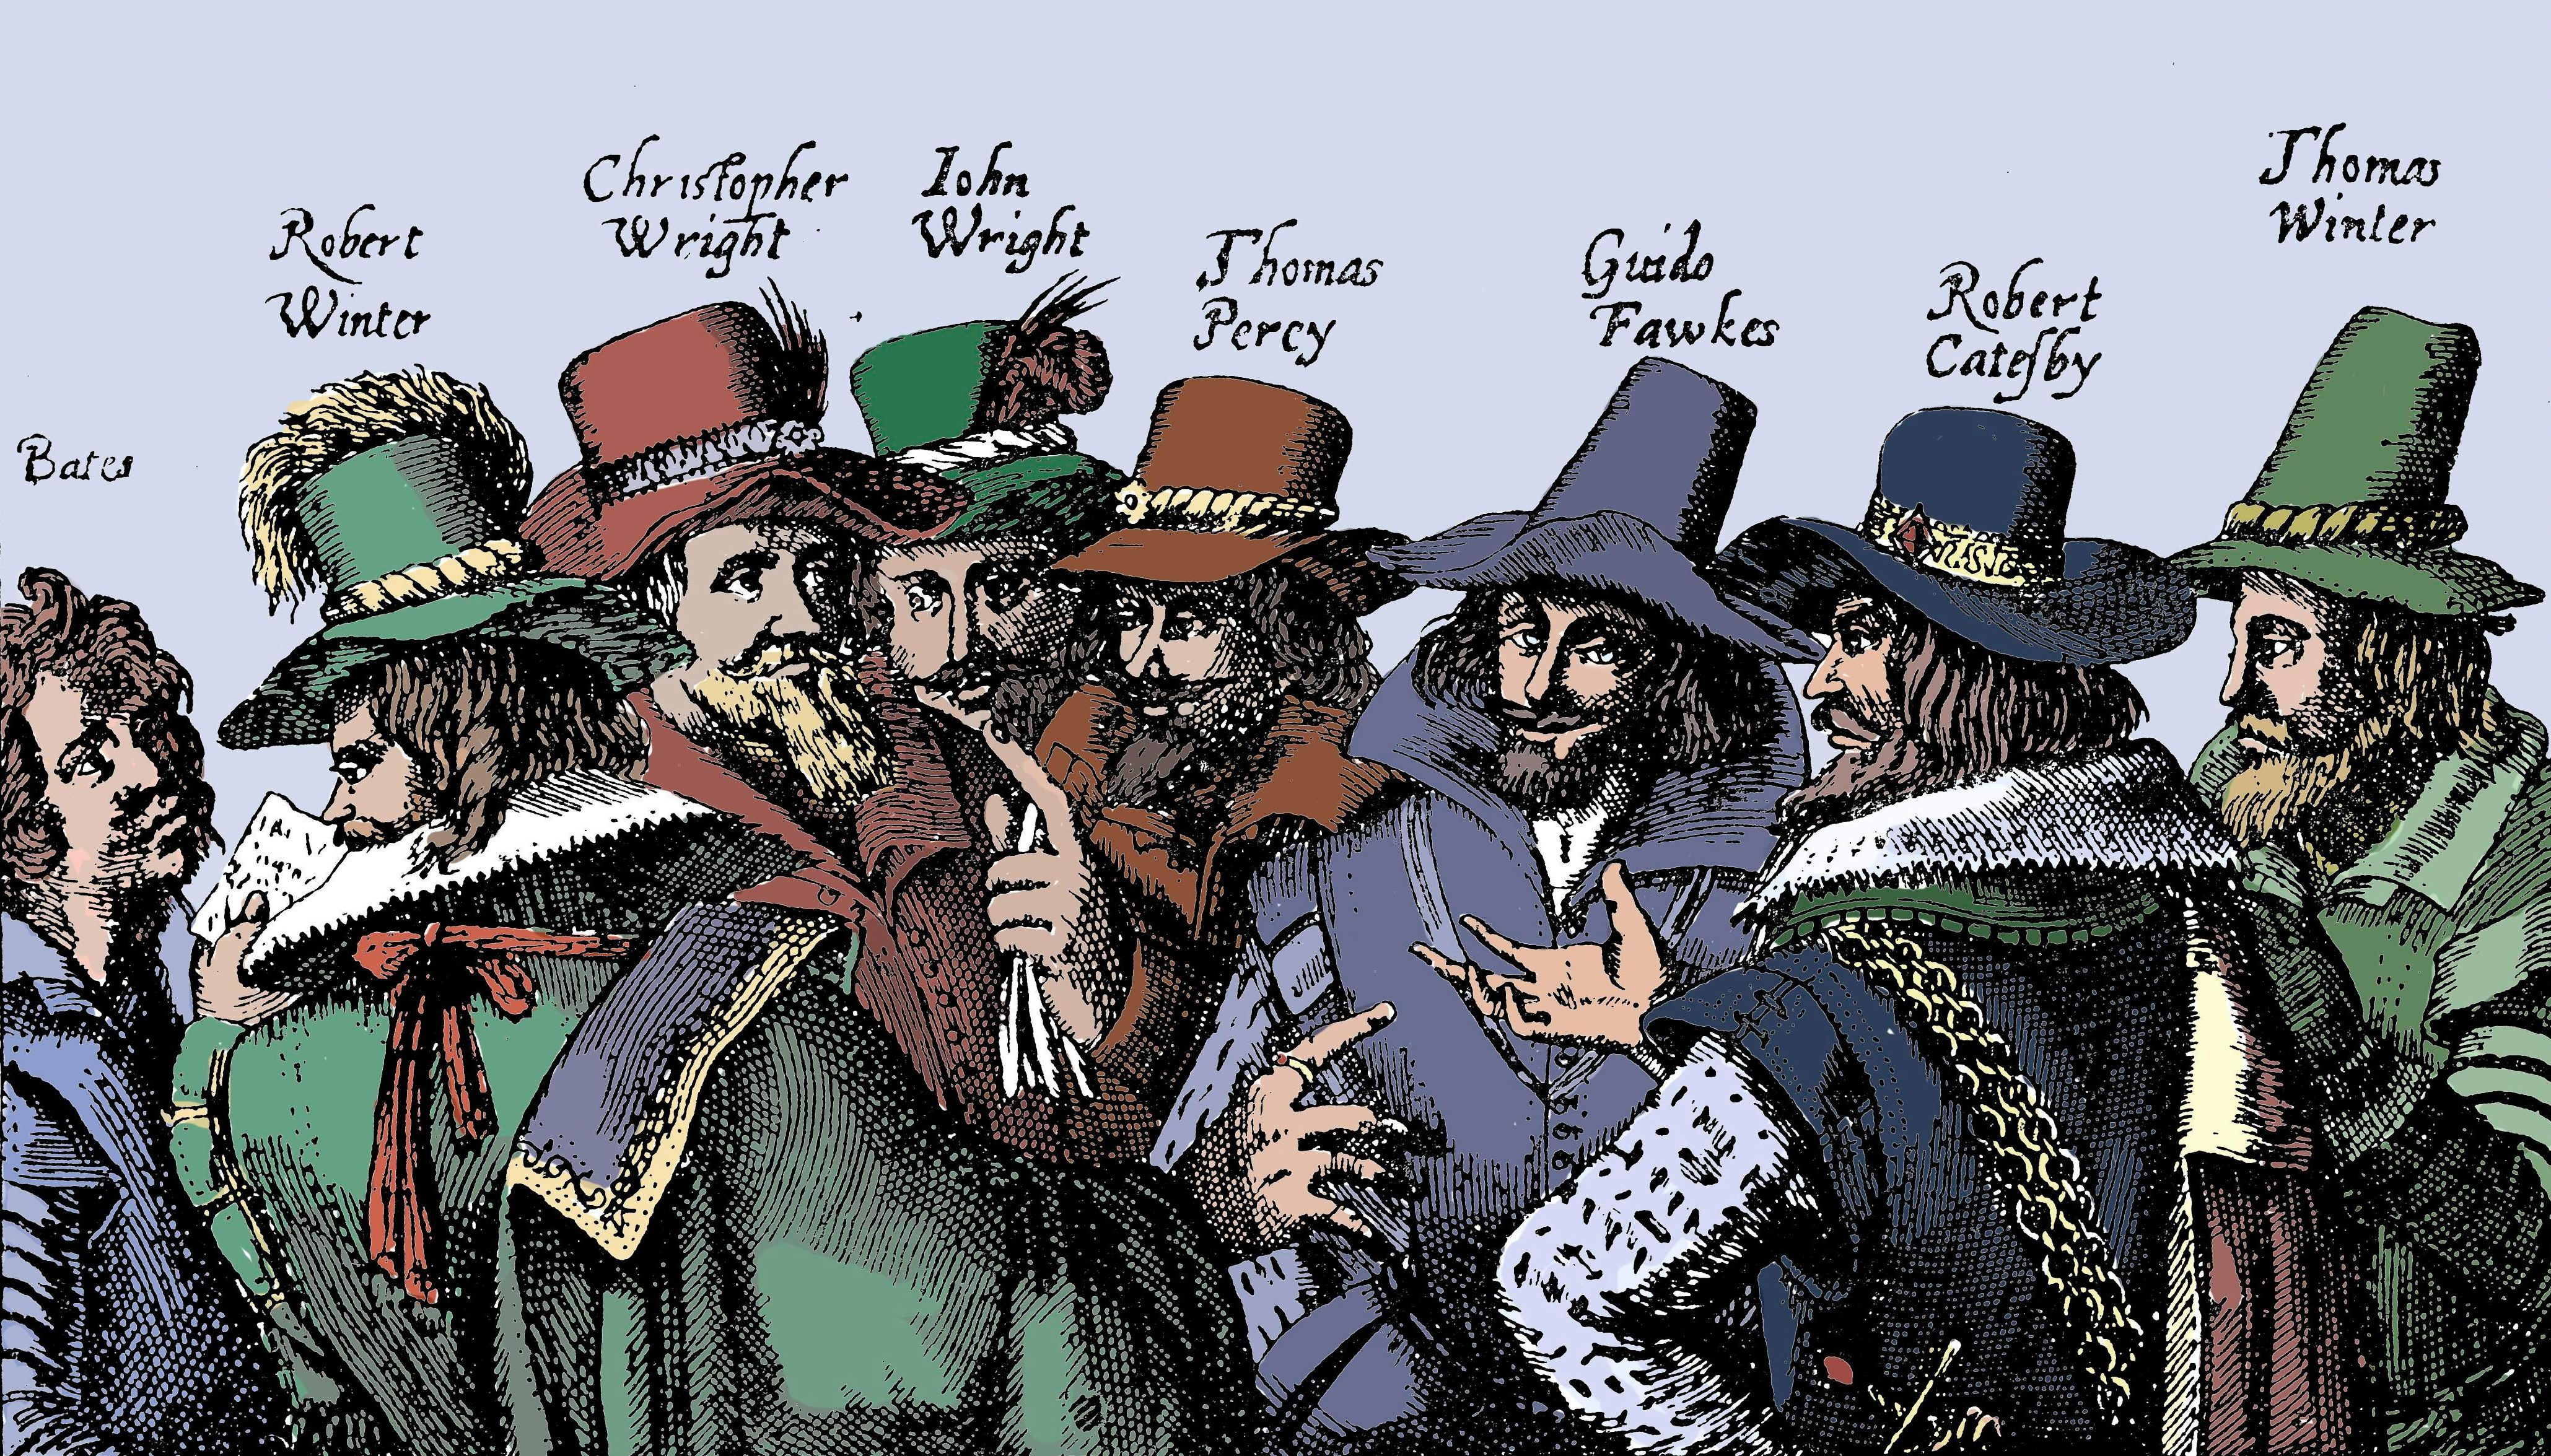 What was the gunpowder plot of 1605 and why did Guy Fawkes and Robert Catesby try to blow up Parliament?